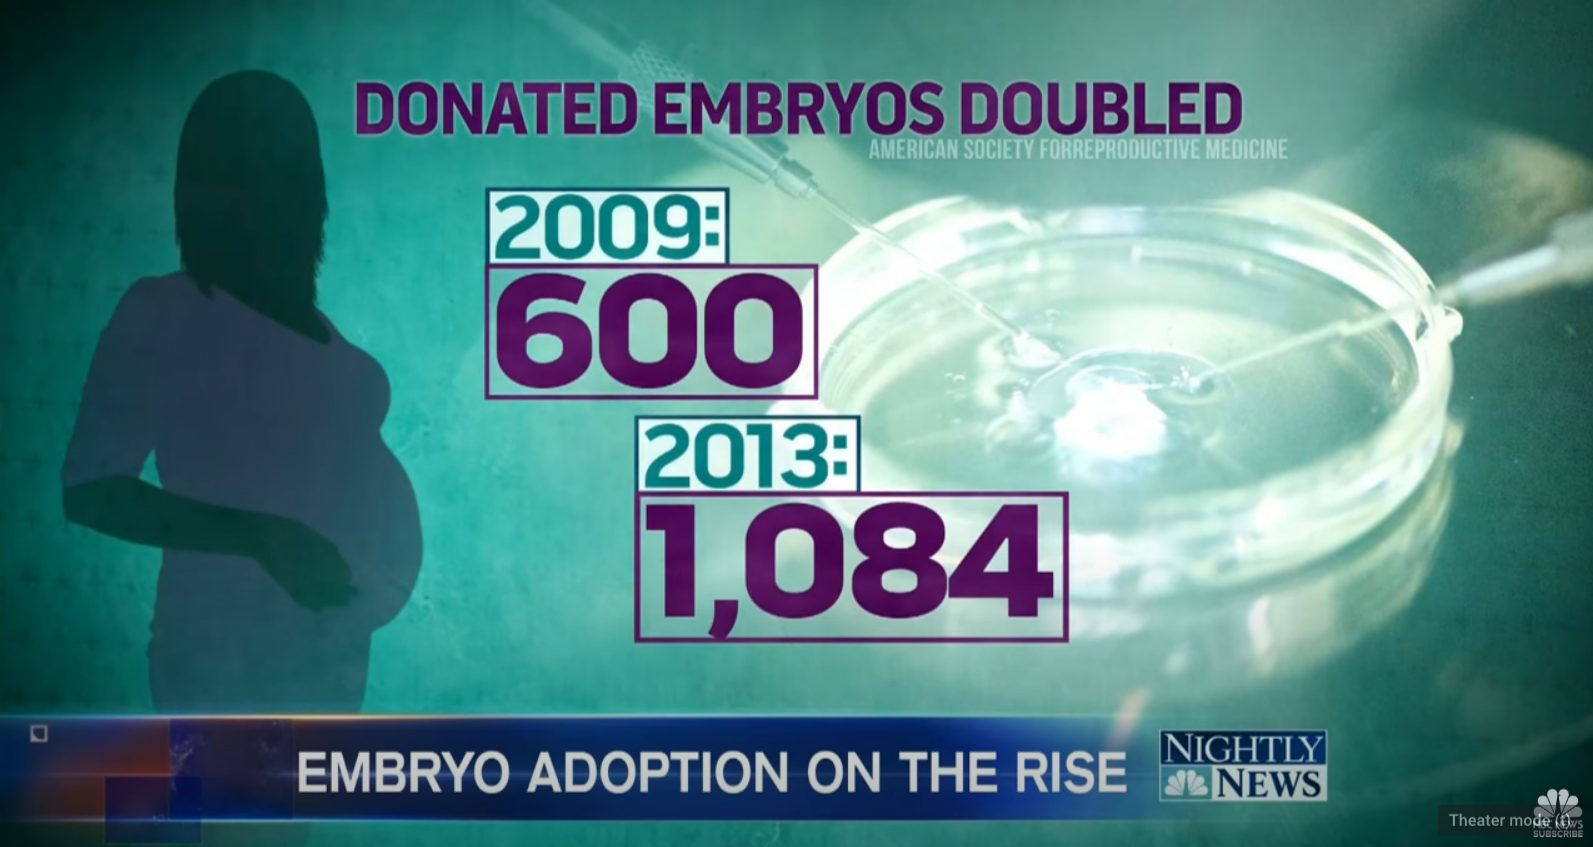 Embryo adoption is on the rise